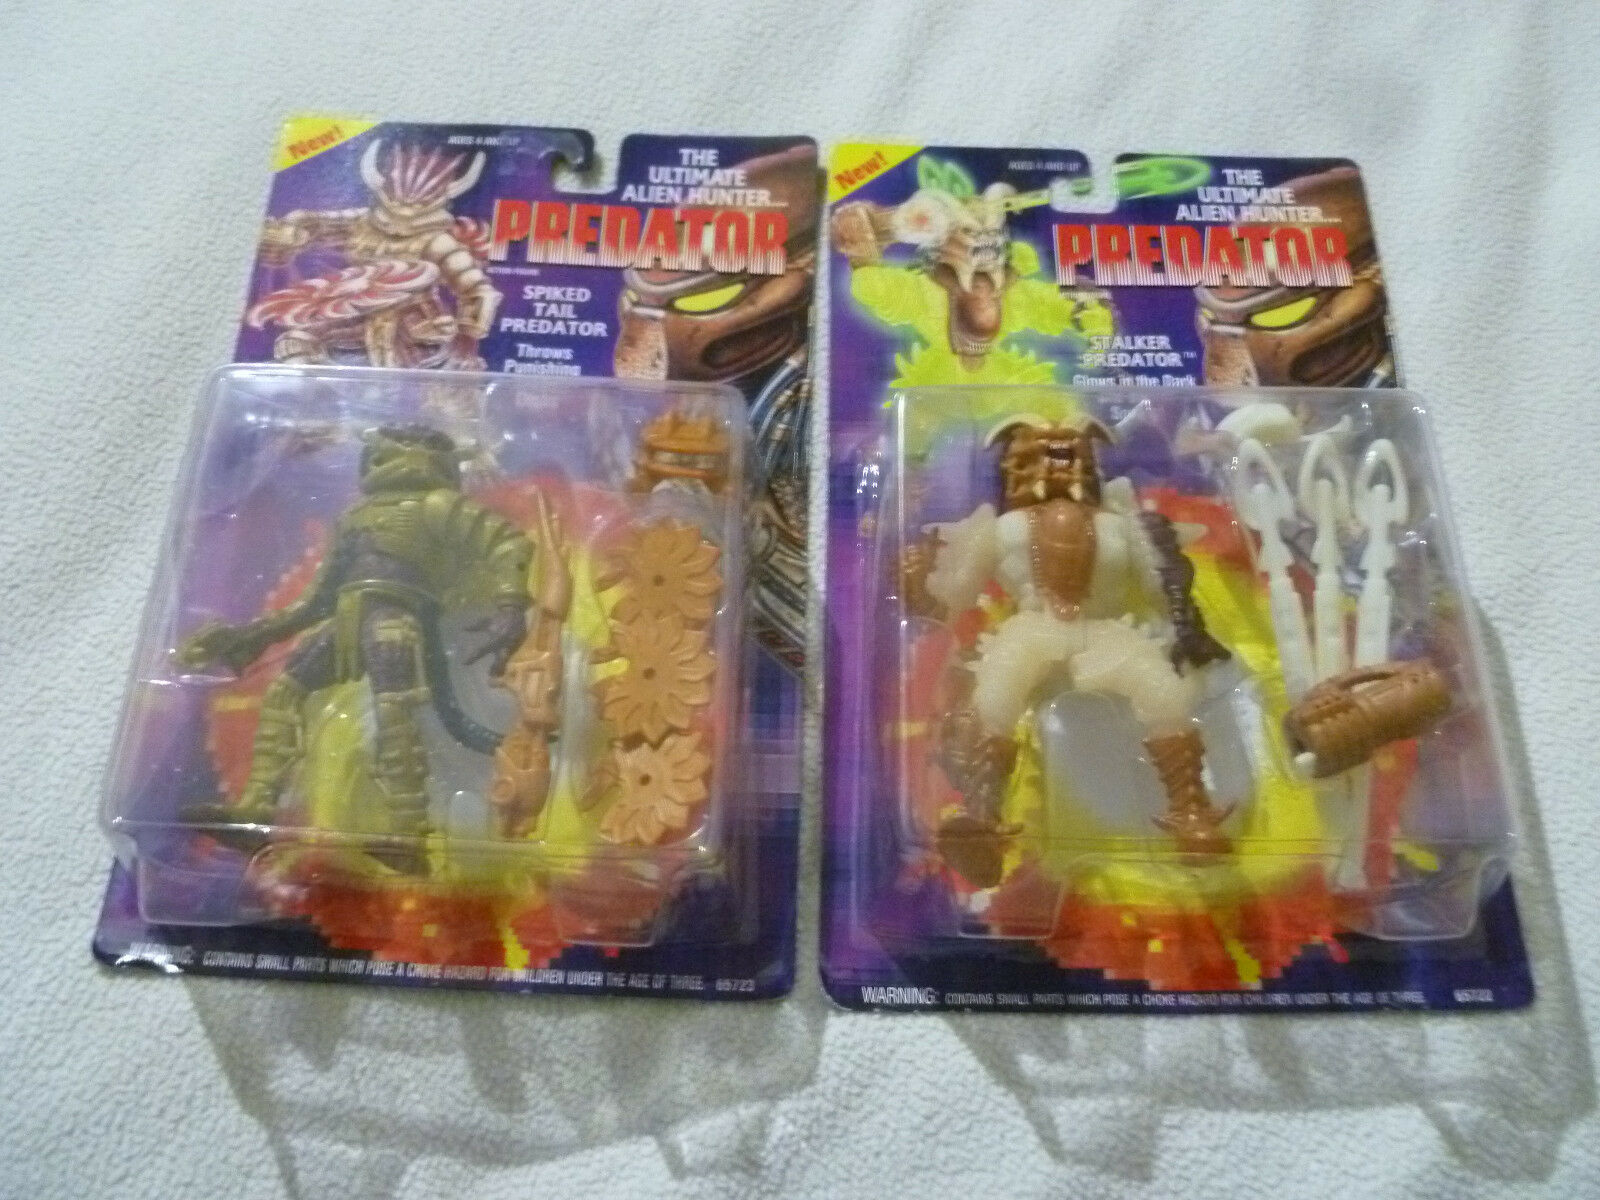 NEW NEW NEW PREDATOR ACTION FIGURE LOT OF 2 STALKER SPIKED TAIL 65722 65723 1994 KENNER caa46f